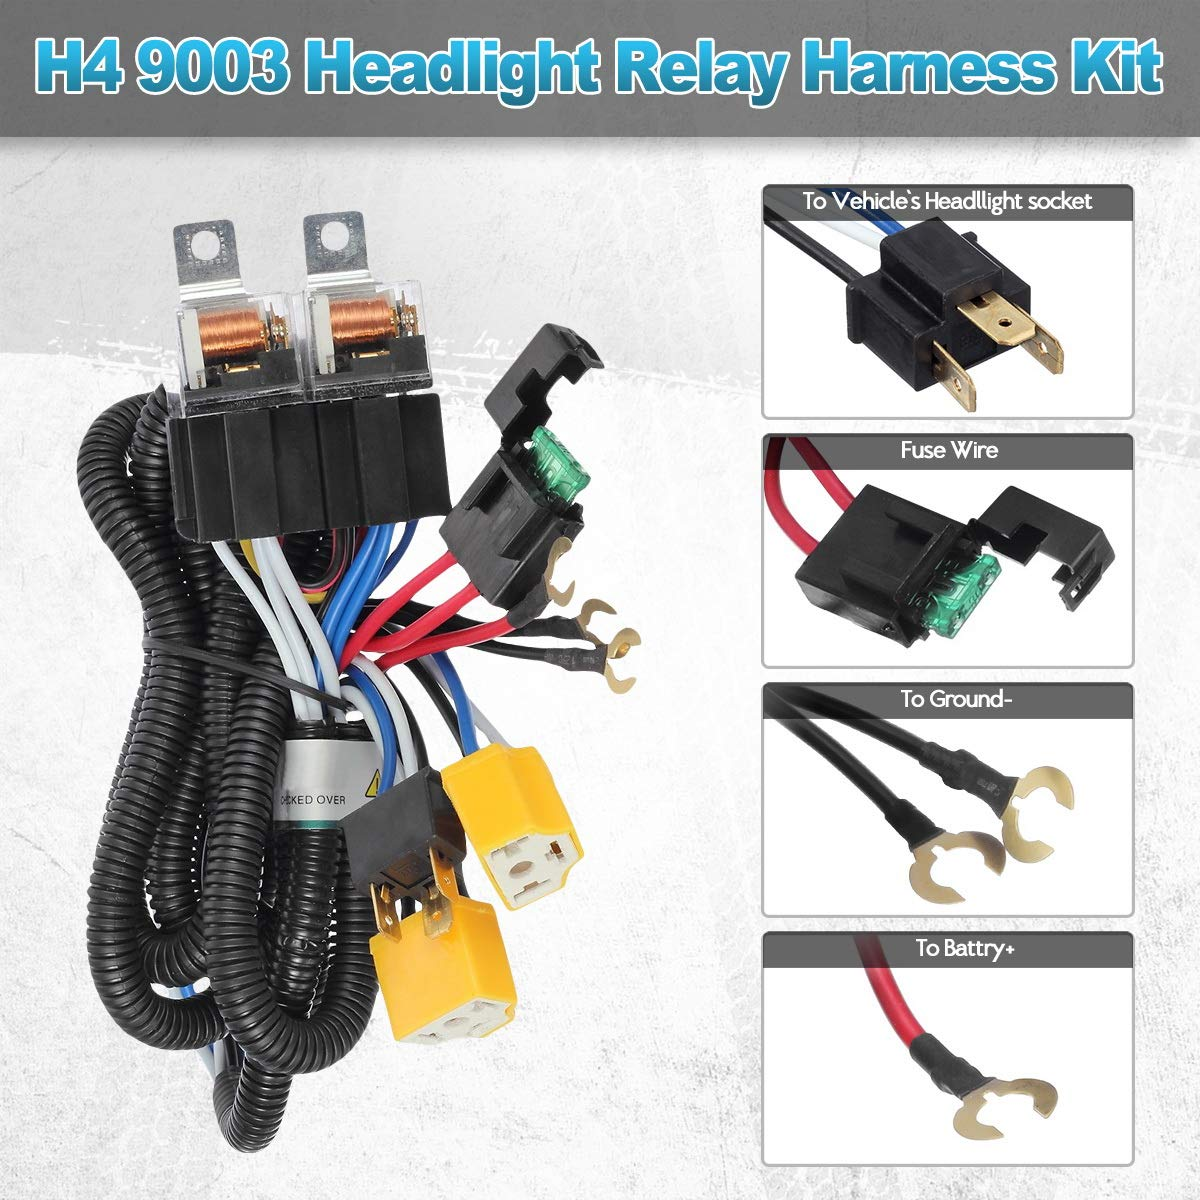 Partsam H4 9003 Headlight Relay Wiring Harness Kit High Socket Low Beam Heat Ceramic Plugs Hid Conversion Compatible With Toyota Pickup